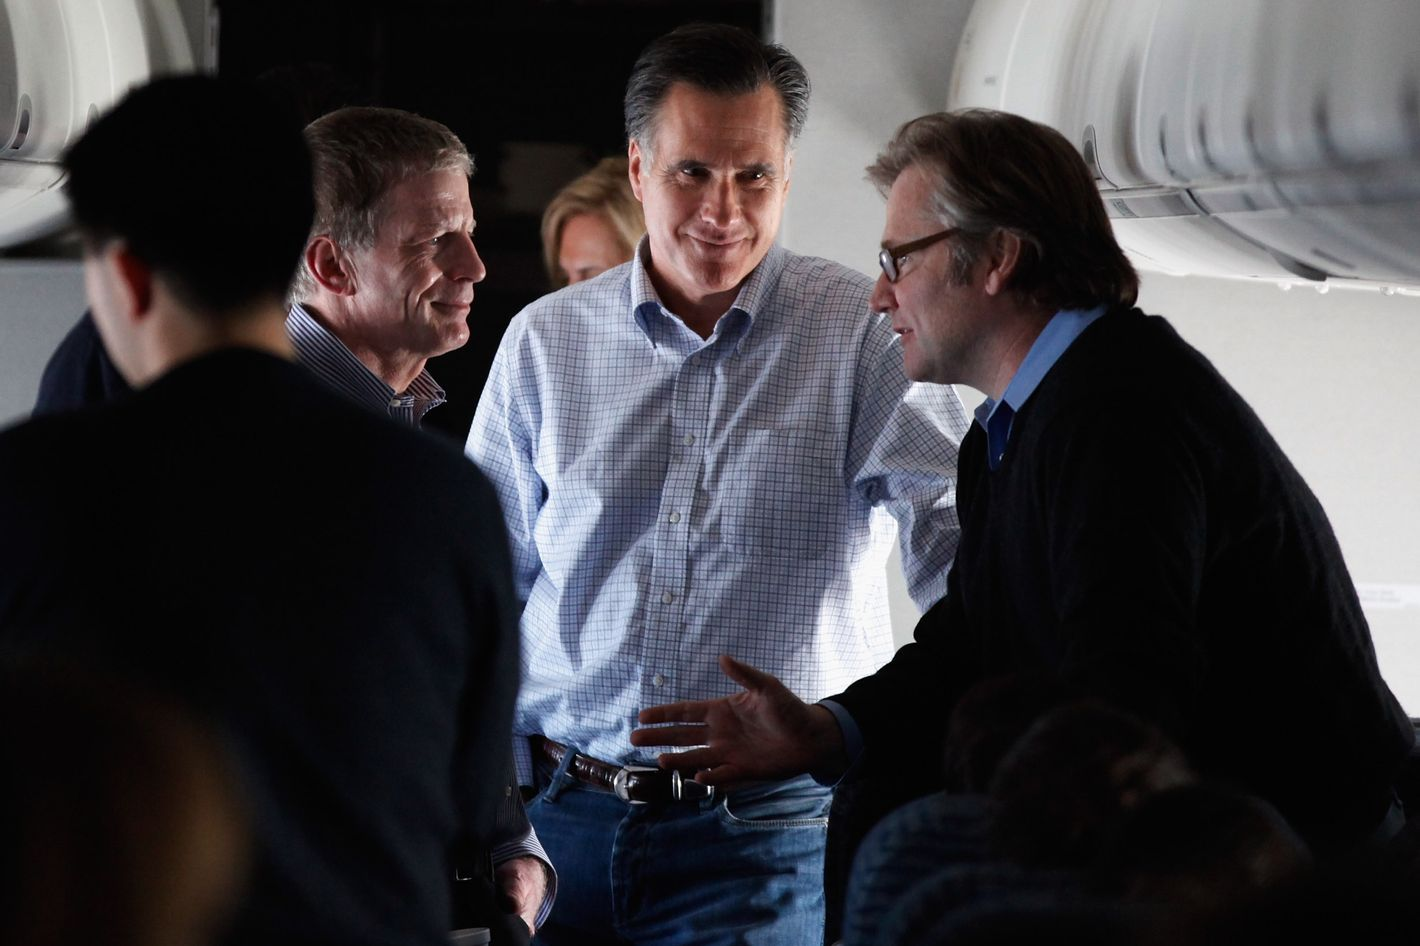 Republican presidential candidate and former Massachusetts Governor Mitt Romney (C) talks with campaign advisors Stuart Stevens (L) and Eric Fehrnstrom on a chartered airplane after departing Des Moines, Iowa, January 4, 2012 while en route to Manchester, New Hampshire.